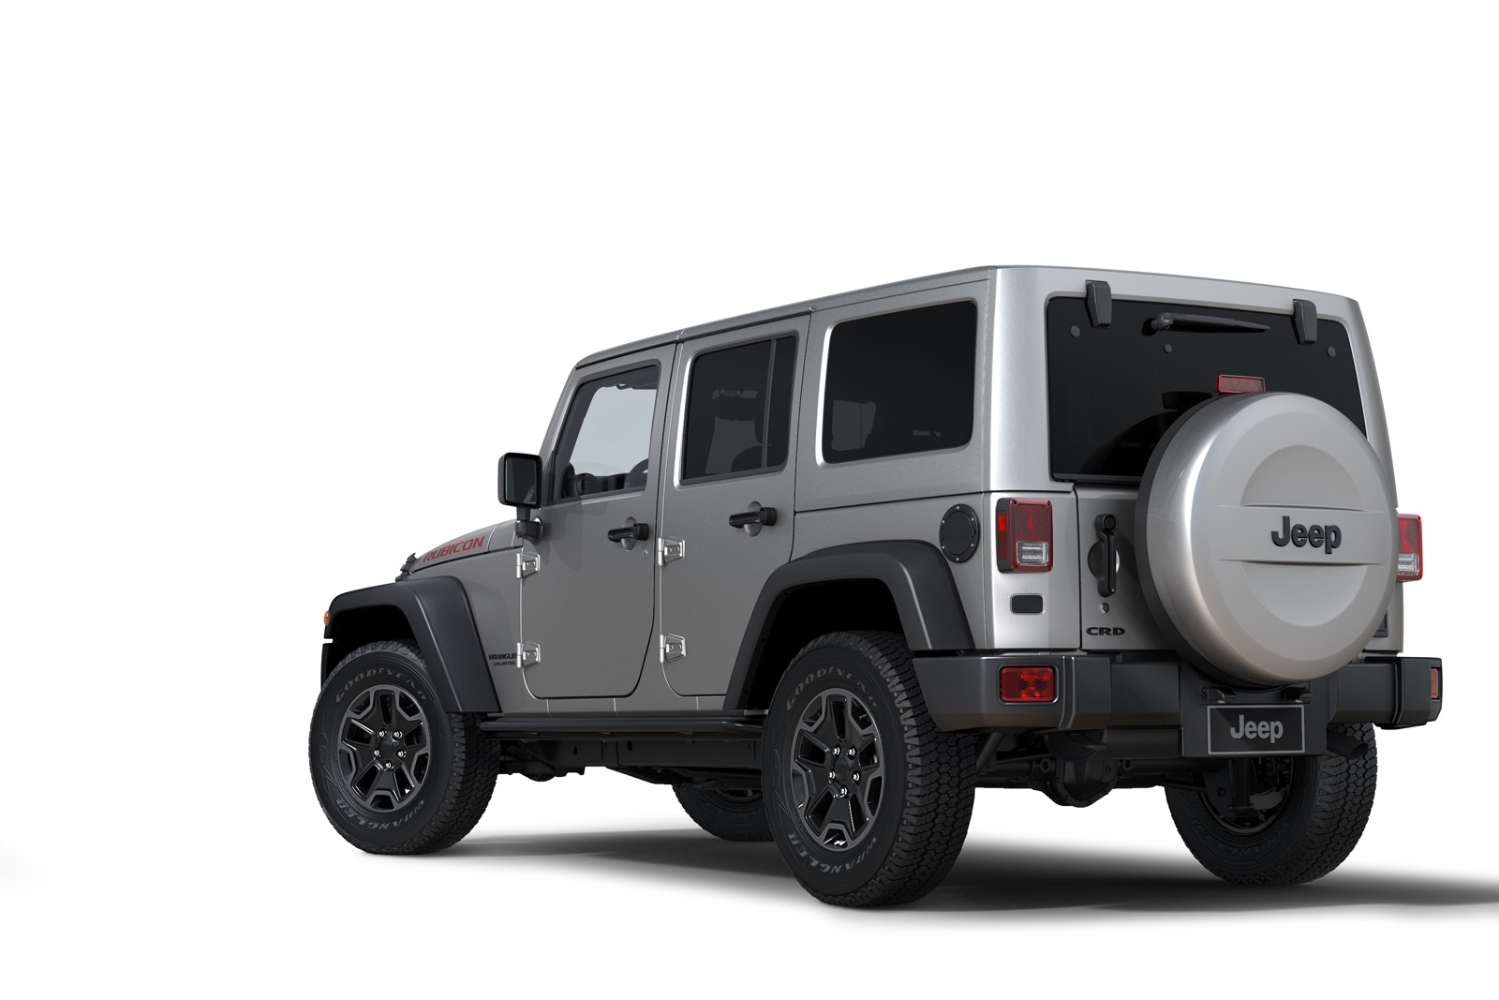 jeep wrangler rubicon edition package special europe launched smoky autoevolution models cars carscoops carsinvasion